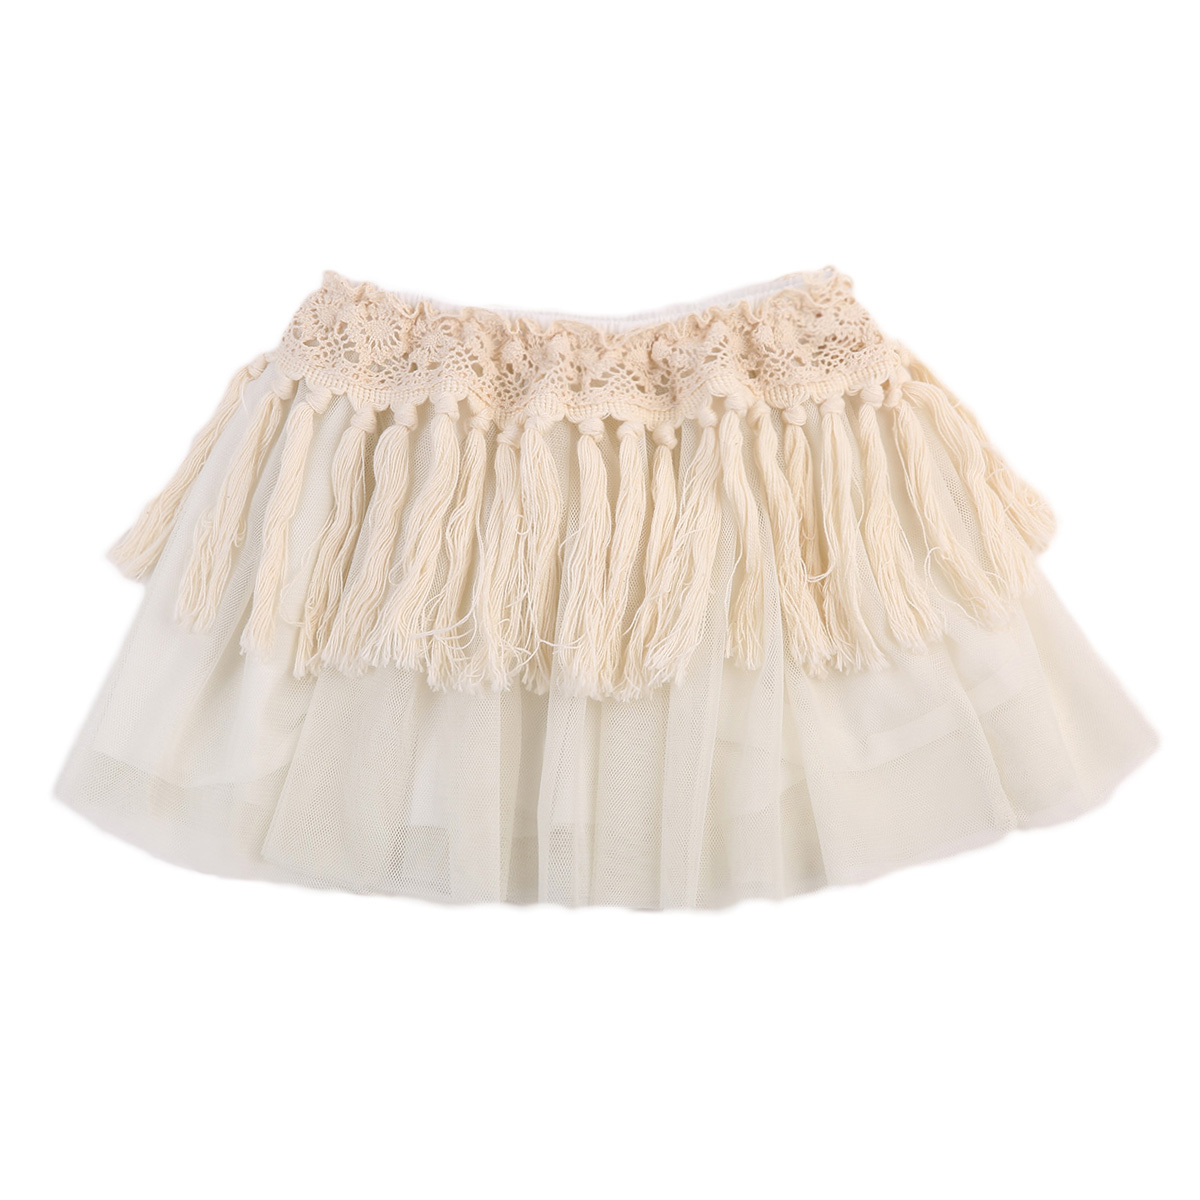 Baby Girl Clothes Baby Girls Tassel Tutu Lace Party Princess Skirts 2017 Summer Newborn Skirt Clothes Prop Photo